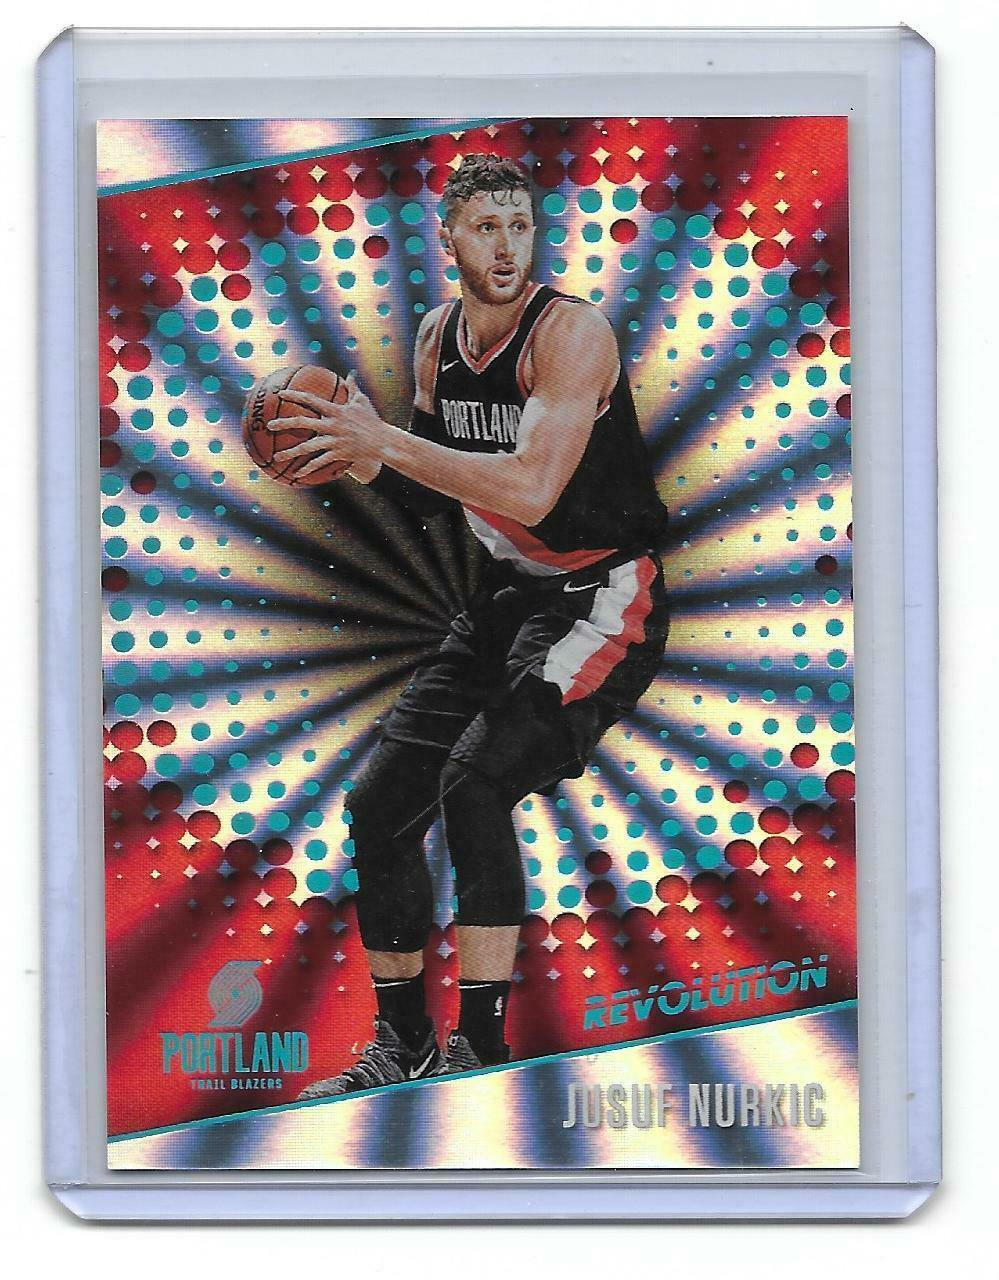 2017-18 Panini Revolution Sunburst Jusuf Nurkic Parallel Card-#/75